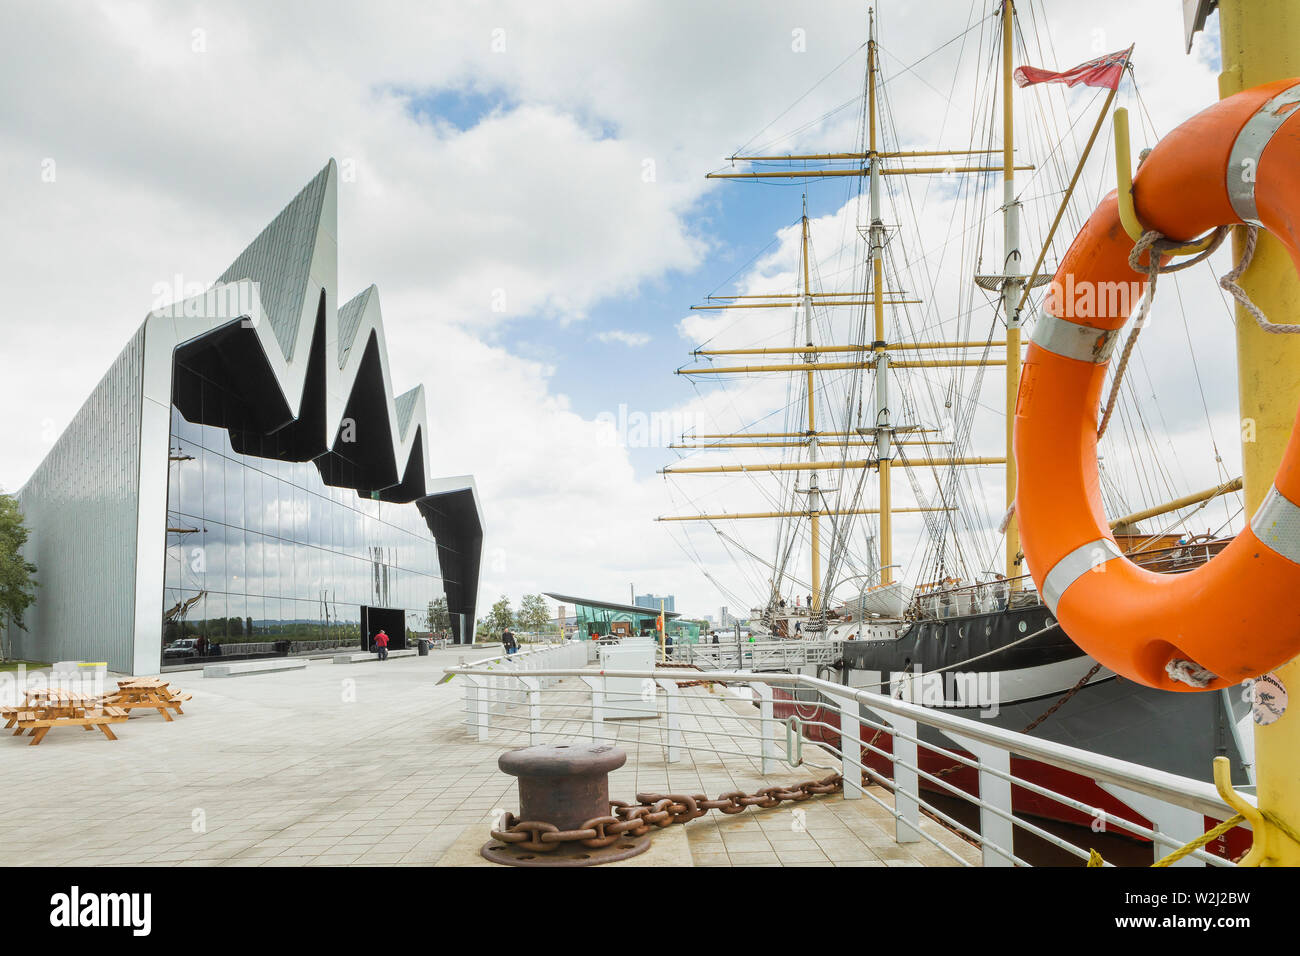 waterfront side of the RIVERSIDE MUSEUM WITH a  LIFEBELT IN THE FOREGROUND - Stock Image